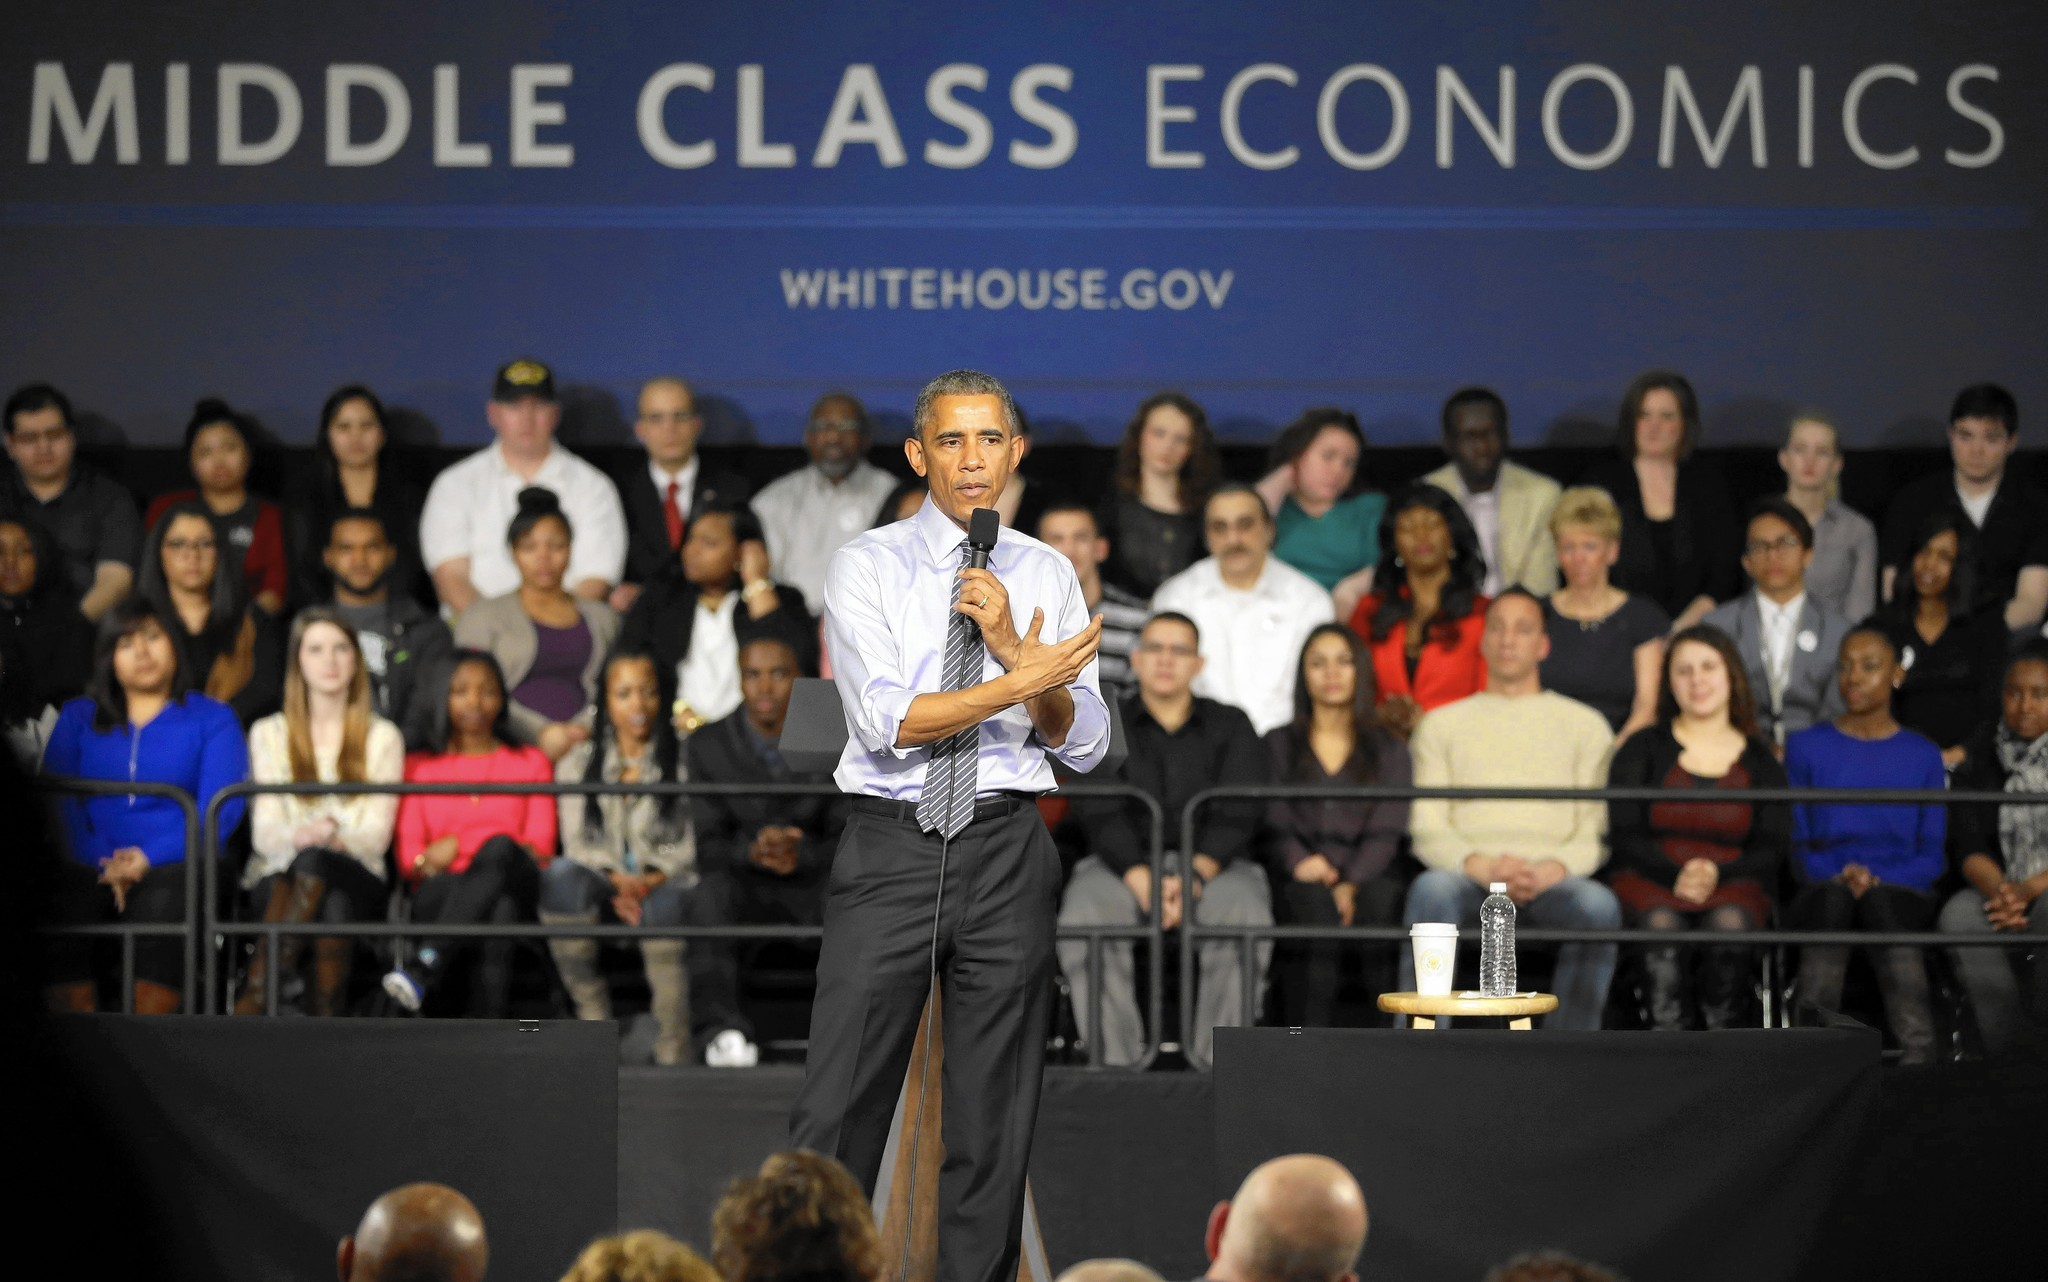 Obama pitches free college plan in Indianapolis